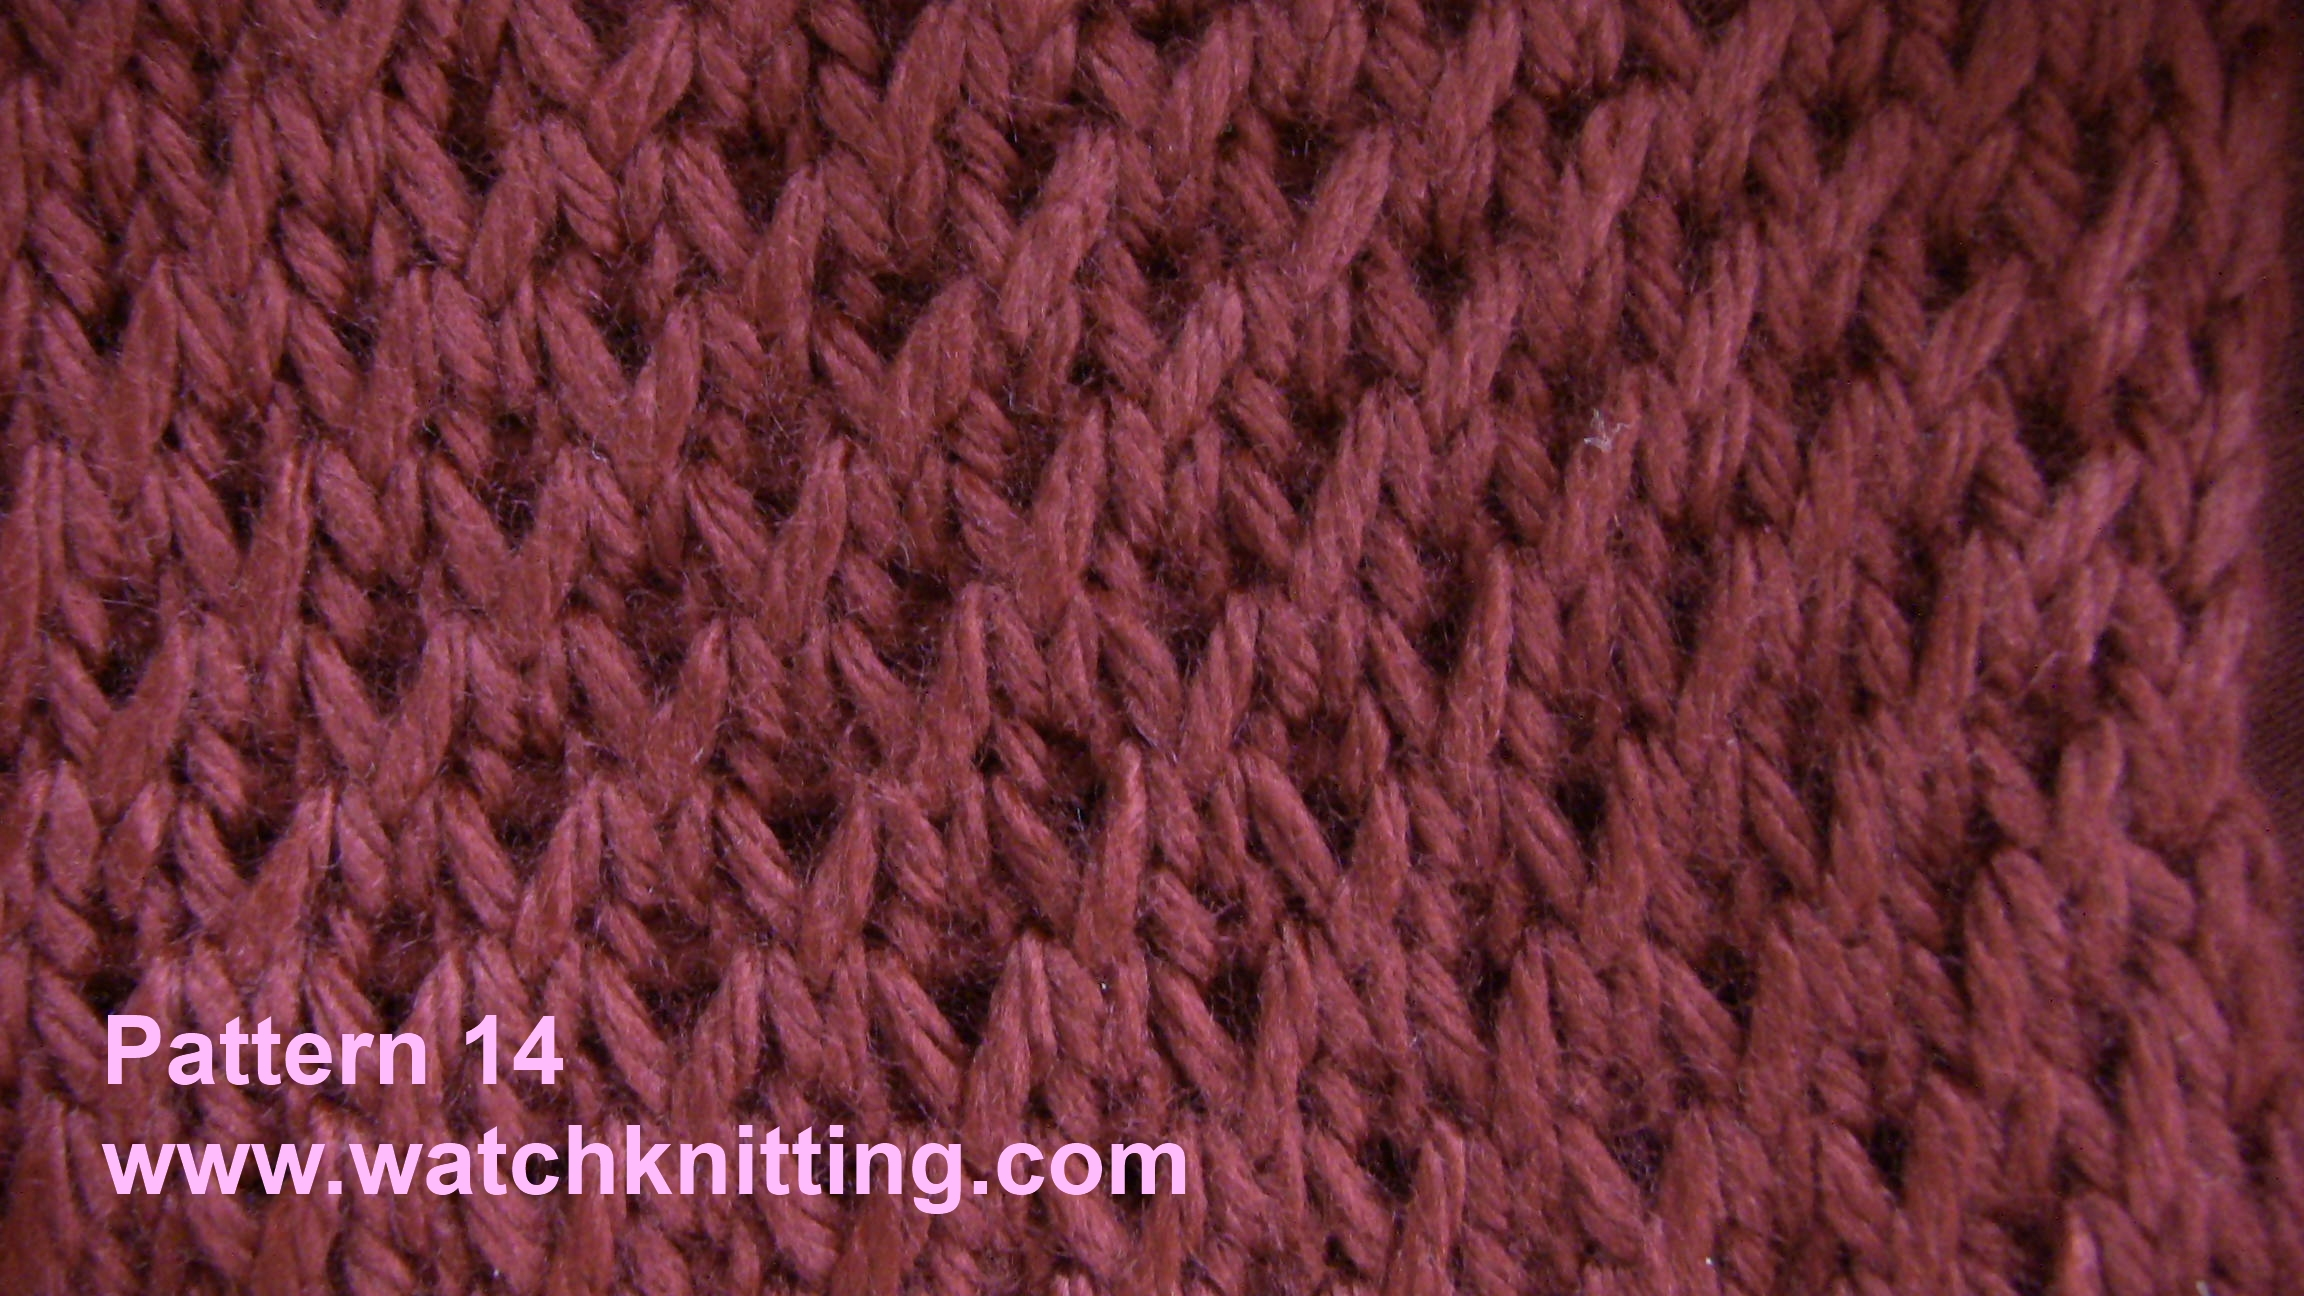 Knitted Patterns : Simple Knitting models by basic stitches